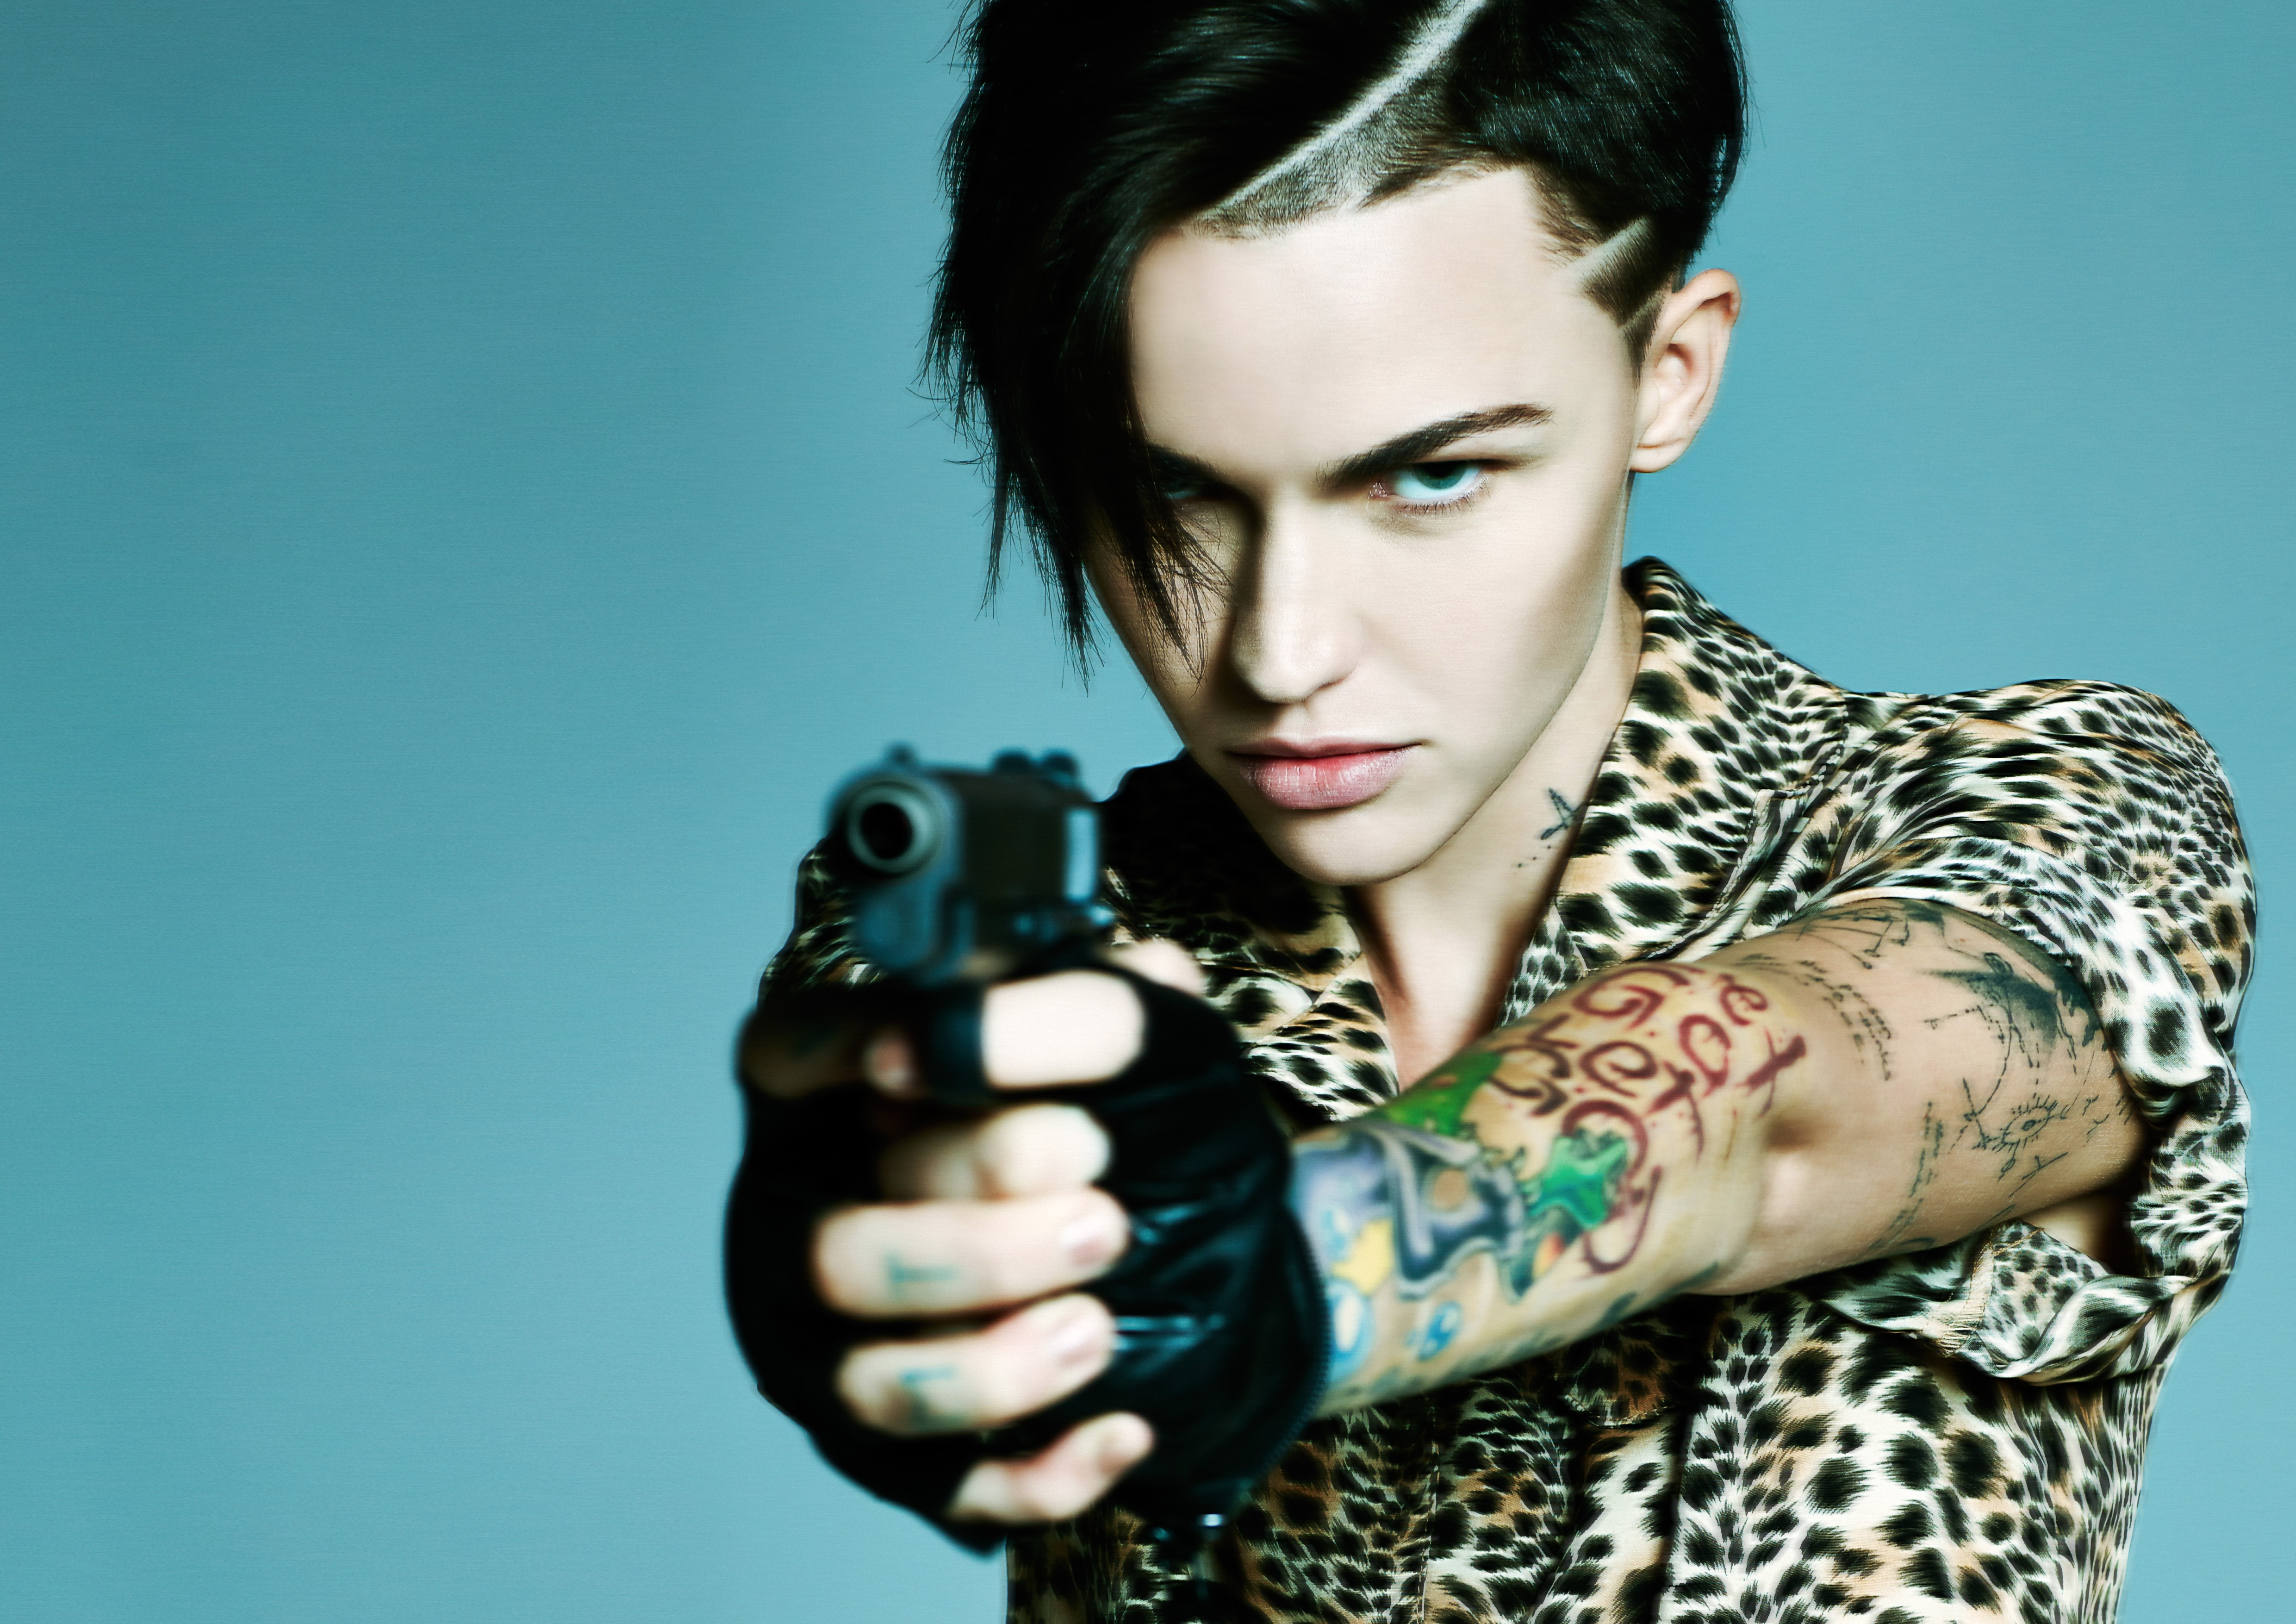 Download John Wick 2 Ruby Rose Wallpapers High Resolution And Quality Download